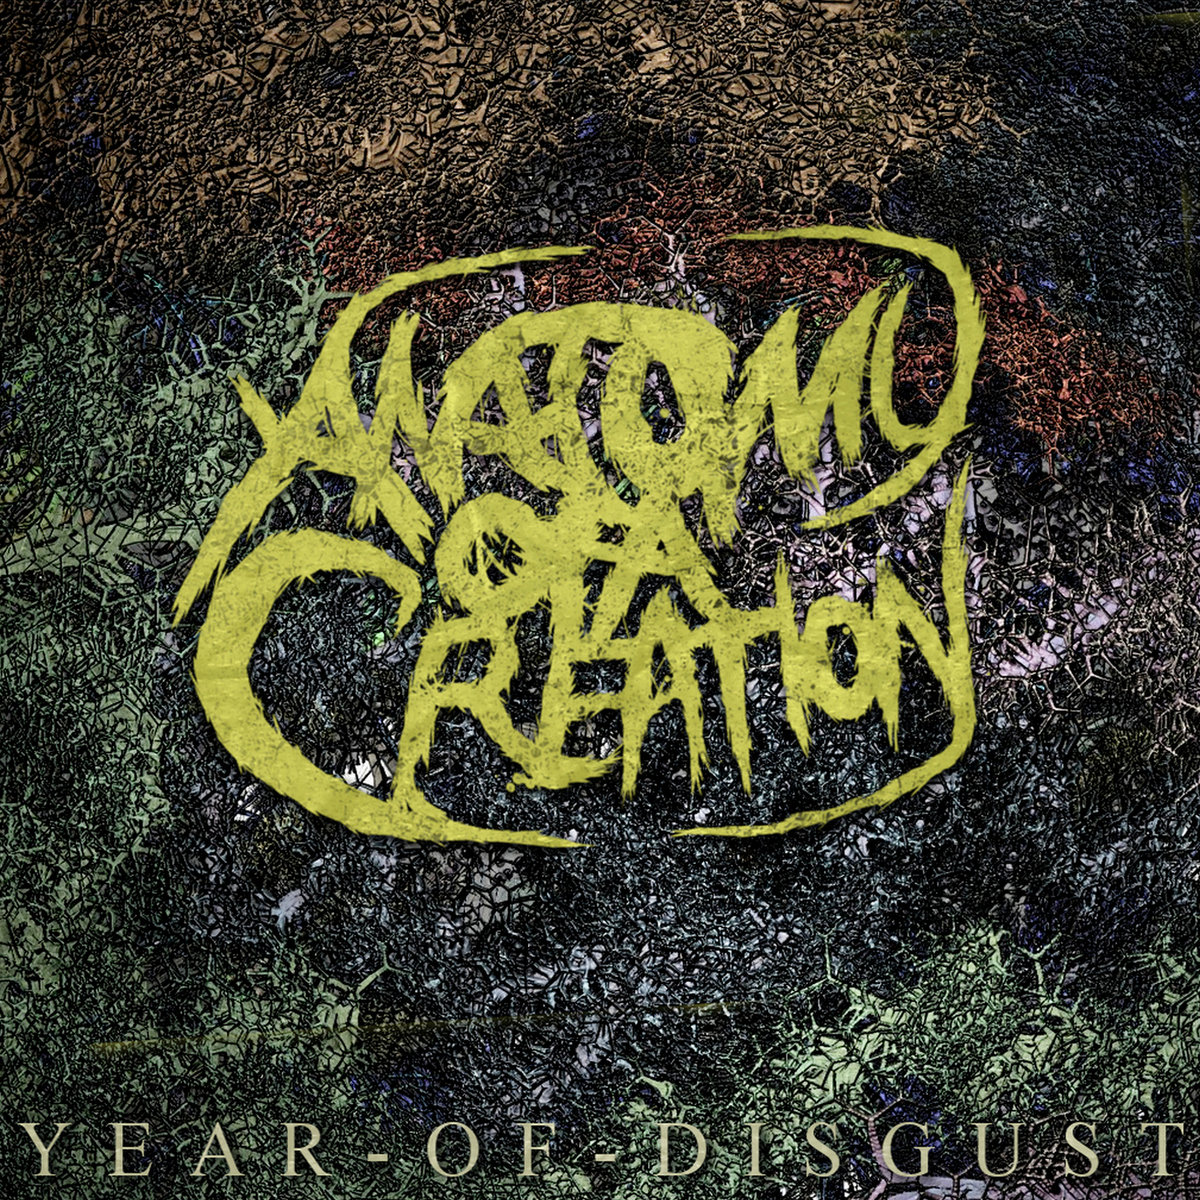 Year of Disgust | Anatomy of a Creation